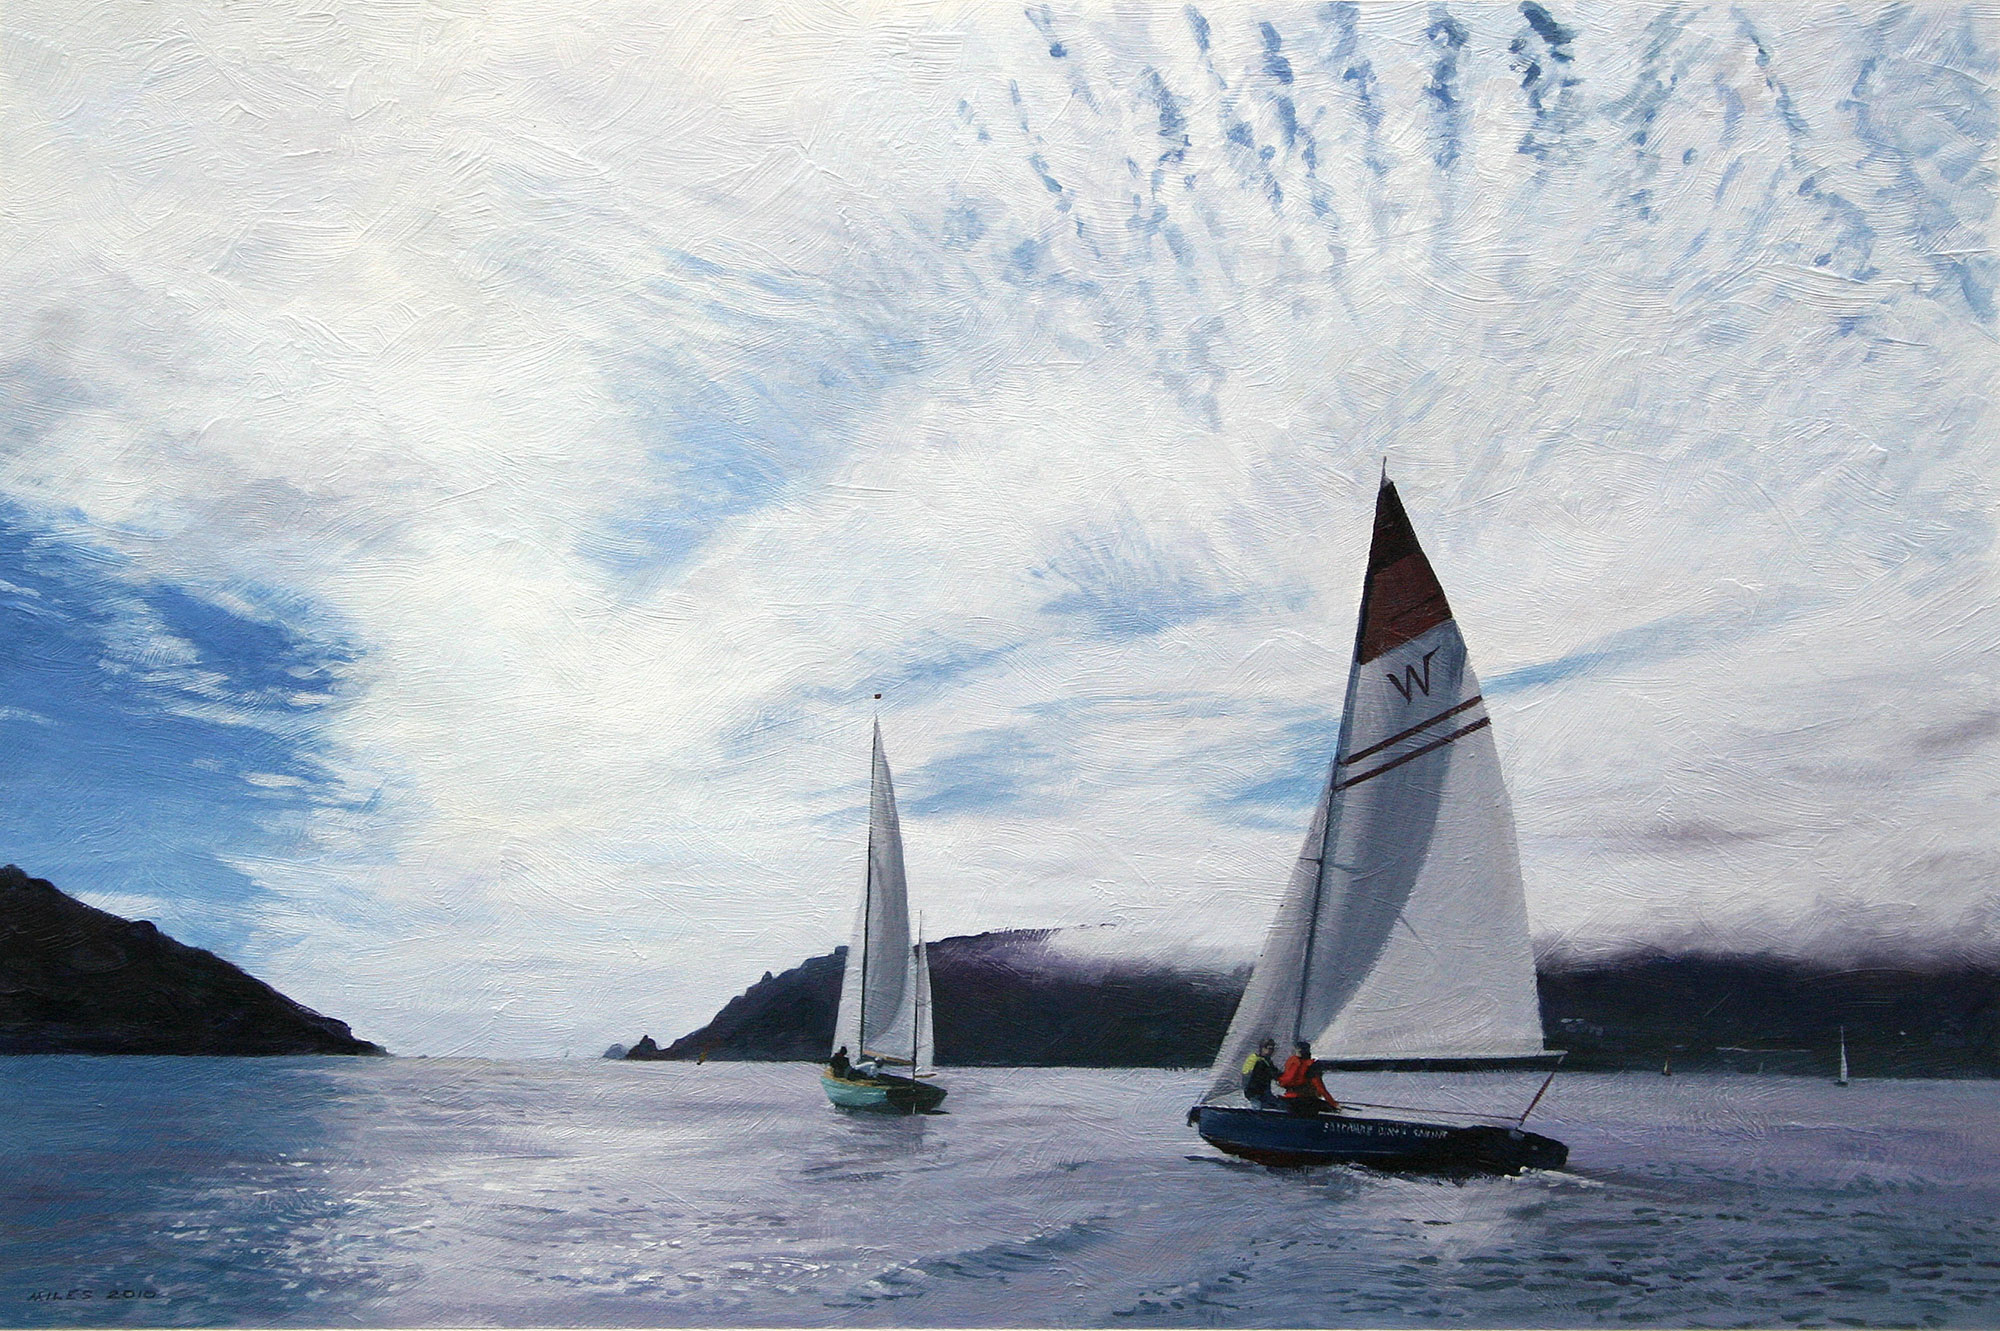 Gerry_Miles_devonpaint_devon_Sailing_under_a_Mackerel_Sky.jpg